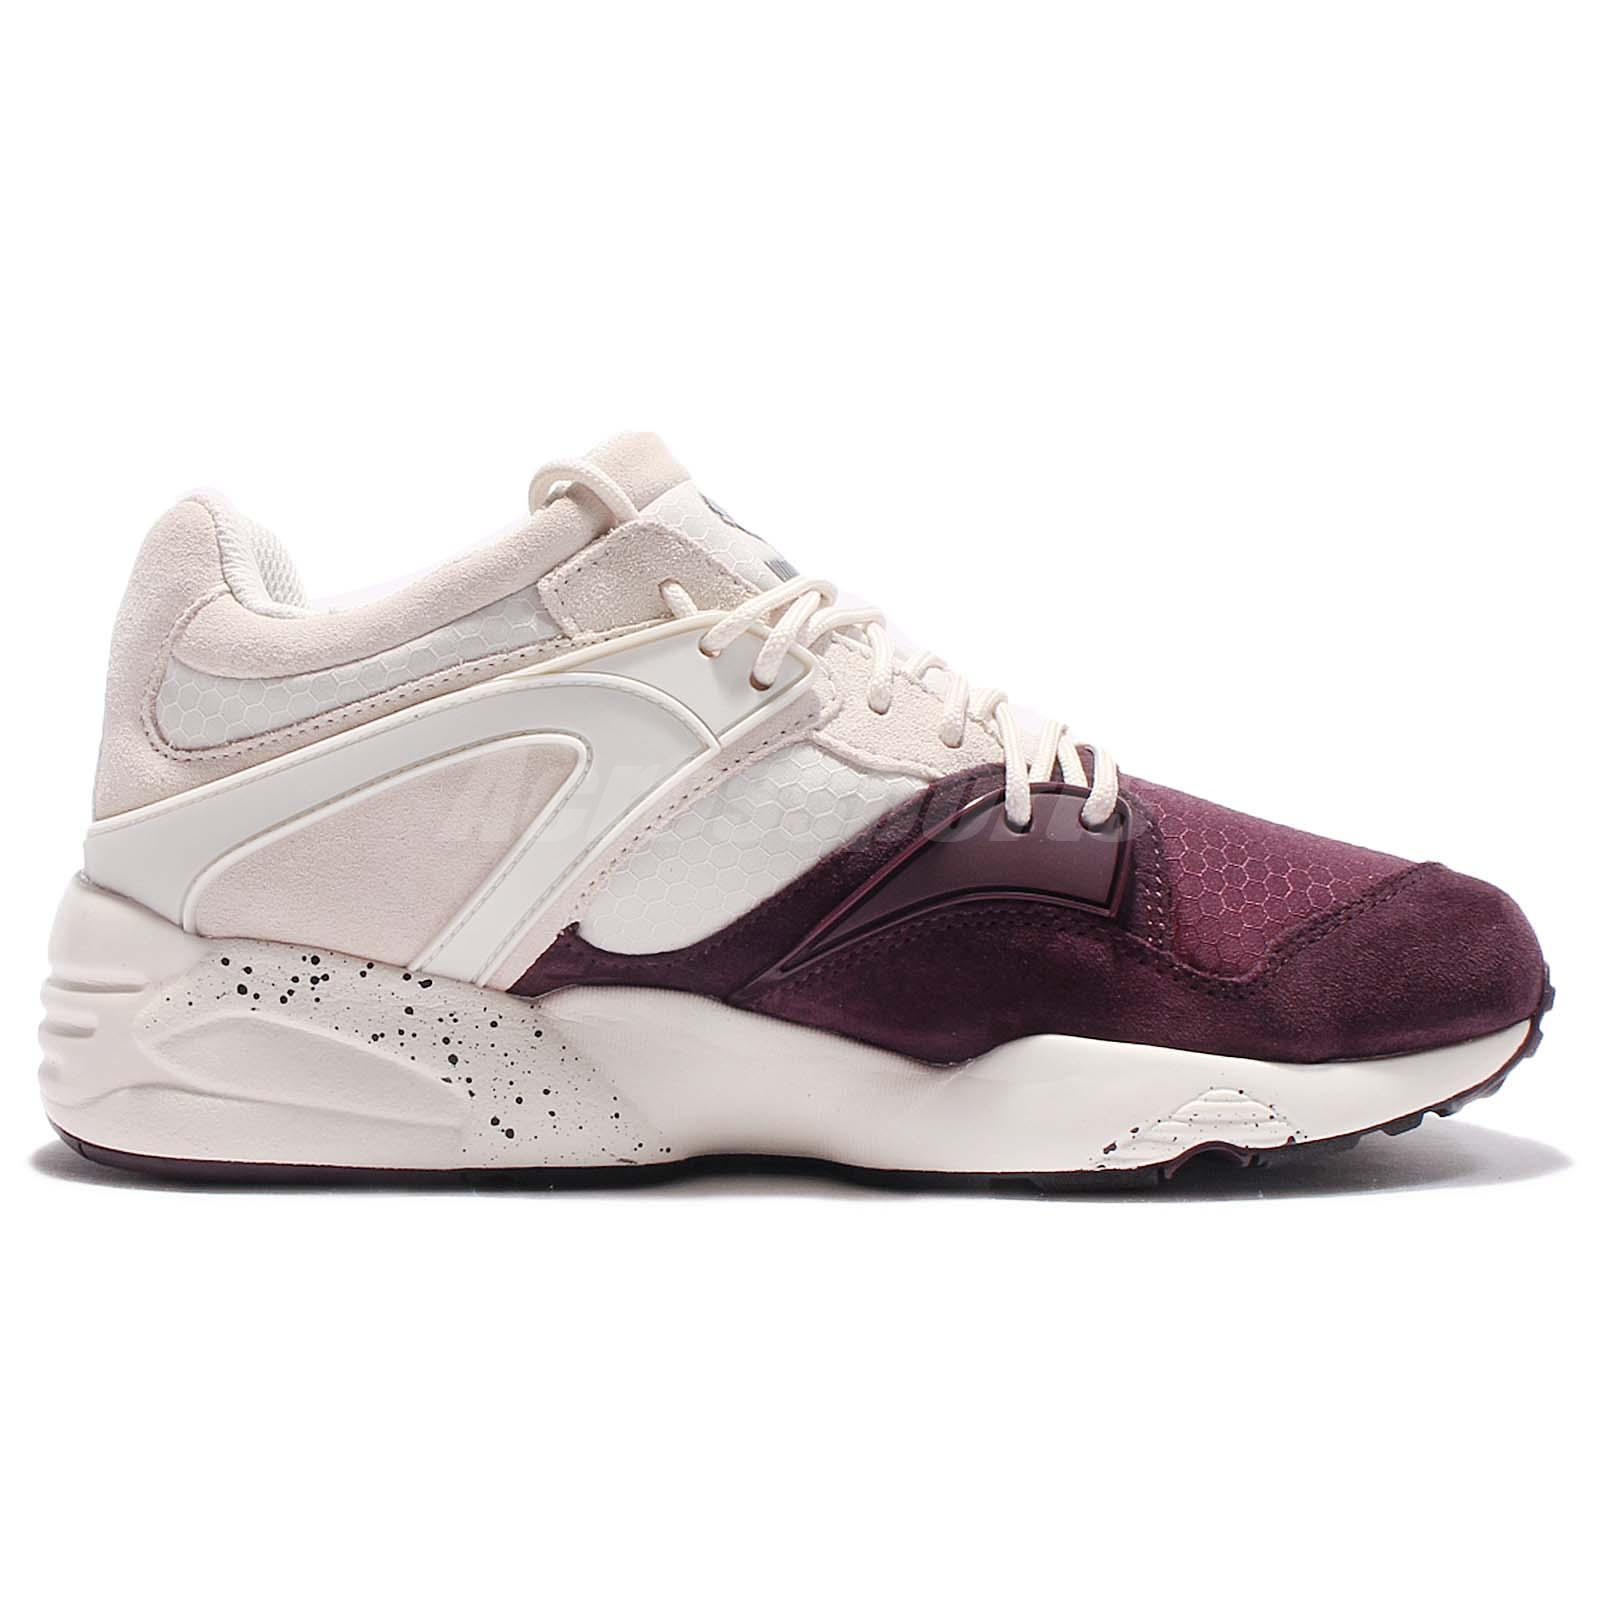 03 Men Blaze Shoe Trinomic White Running Winter Puma Détails Tech Sur 361341 Purple Trainers dxrCeoB